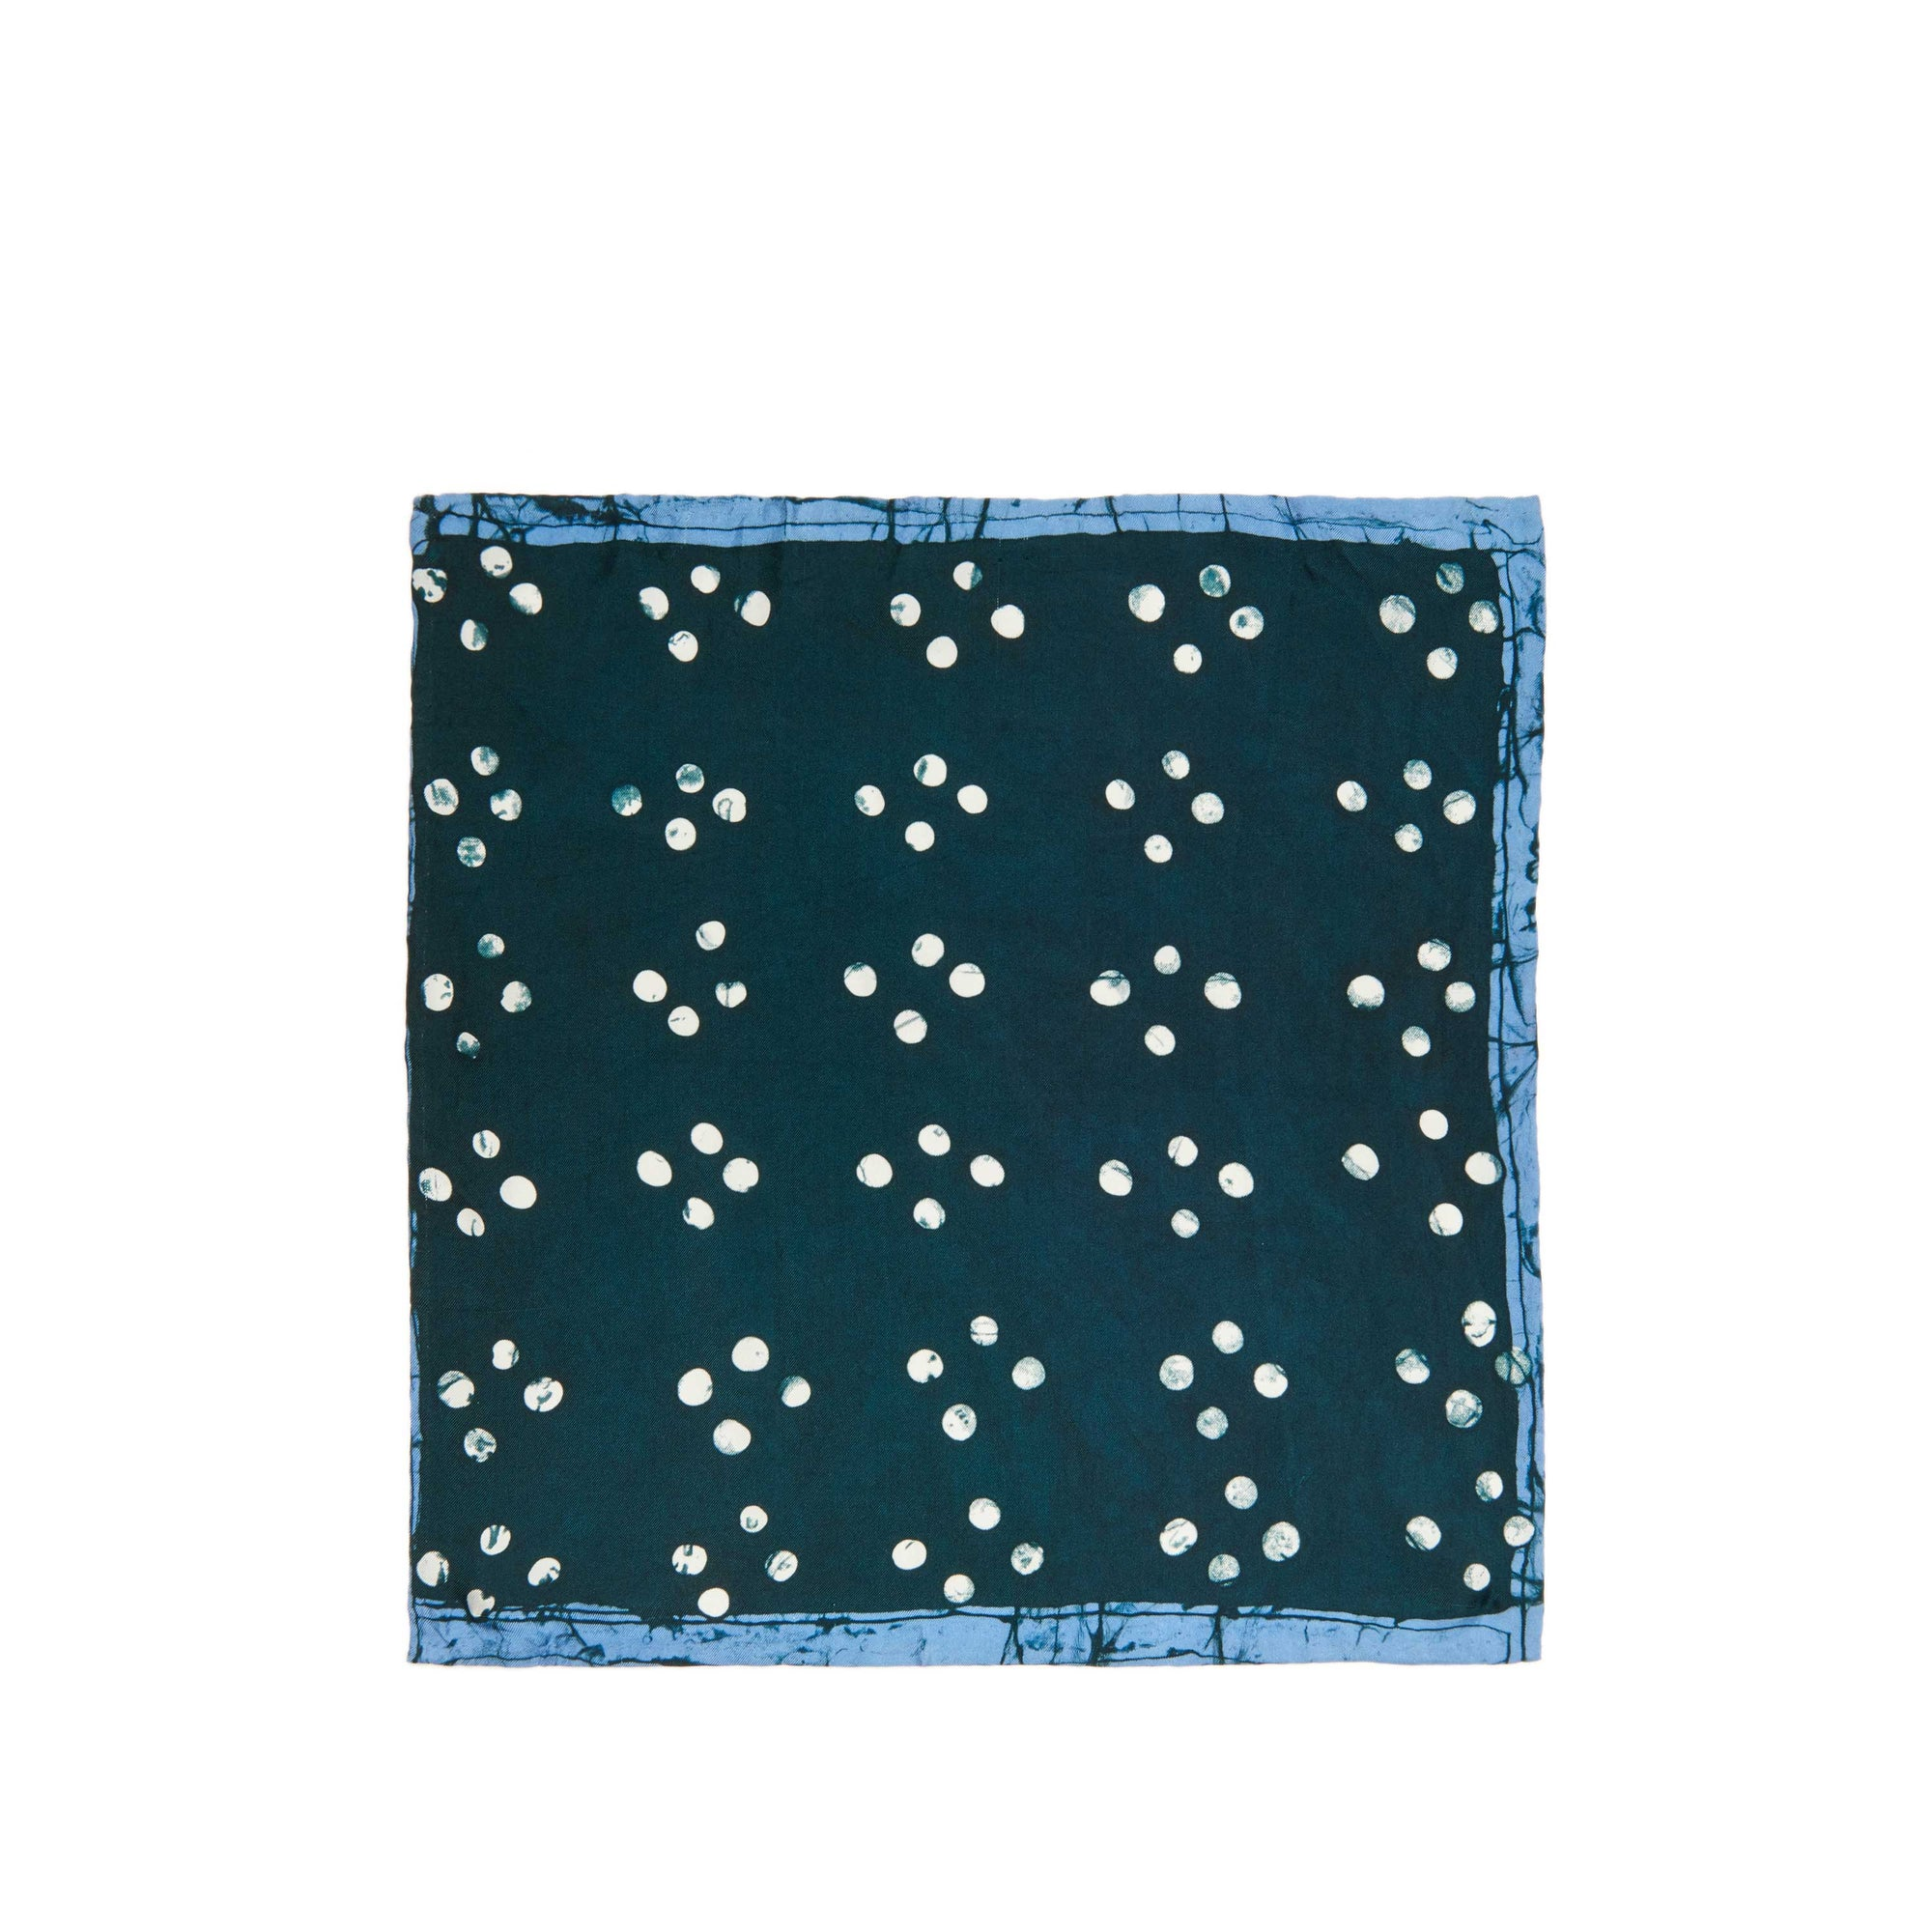 Green Cross Dot Adire Pocket Square